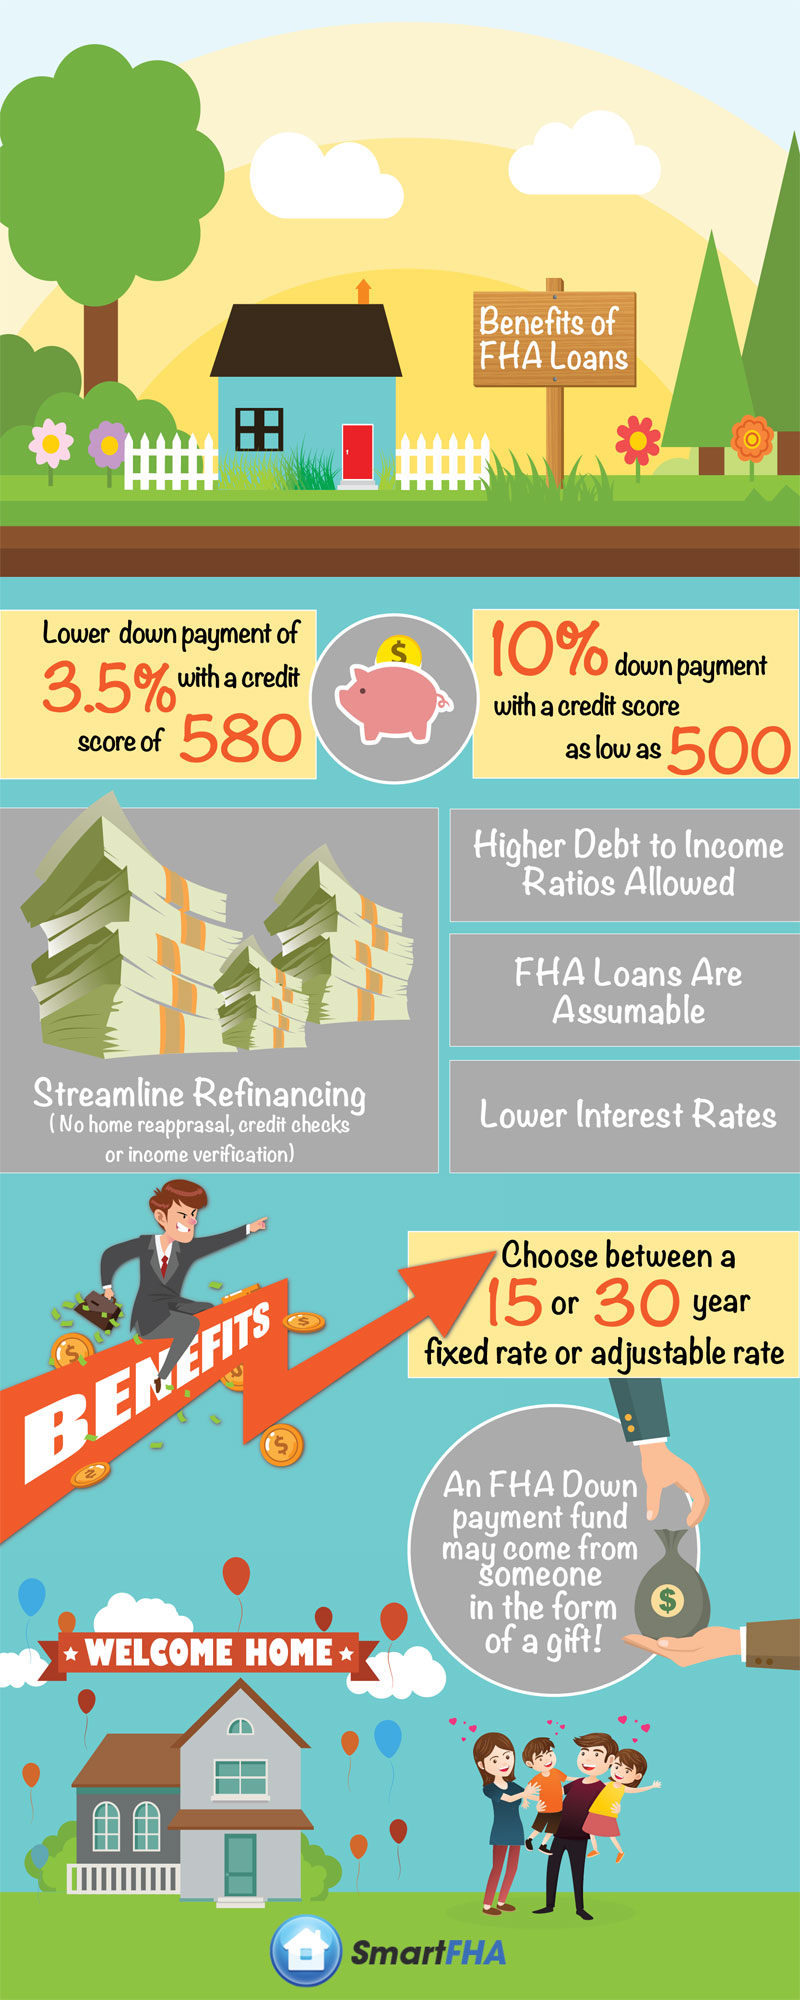 Benefits of FHA Loans